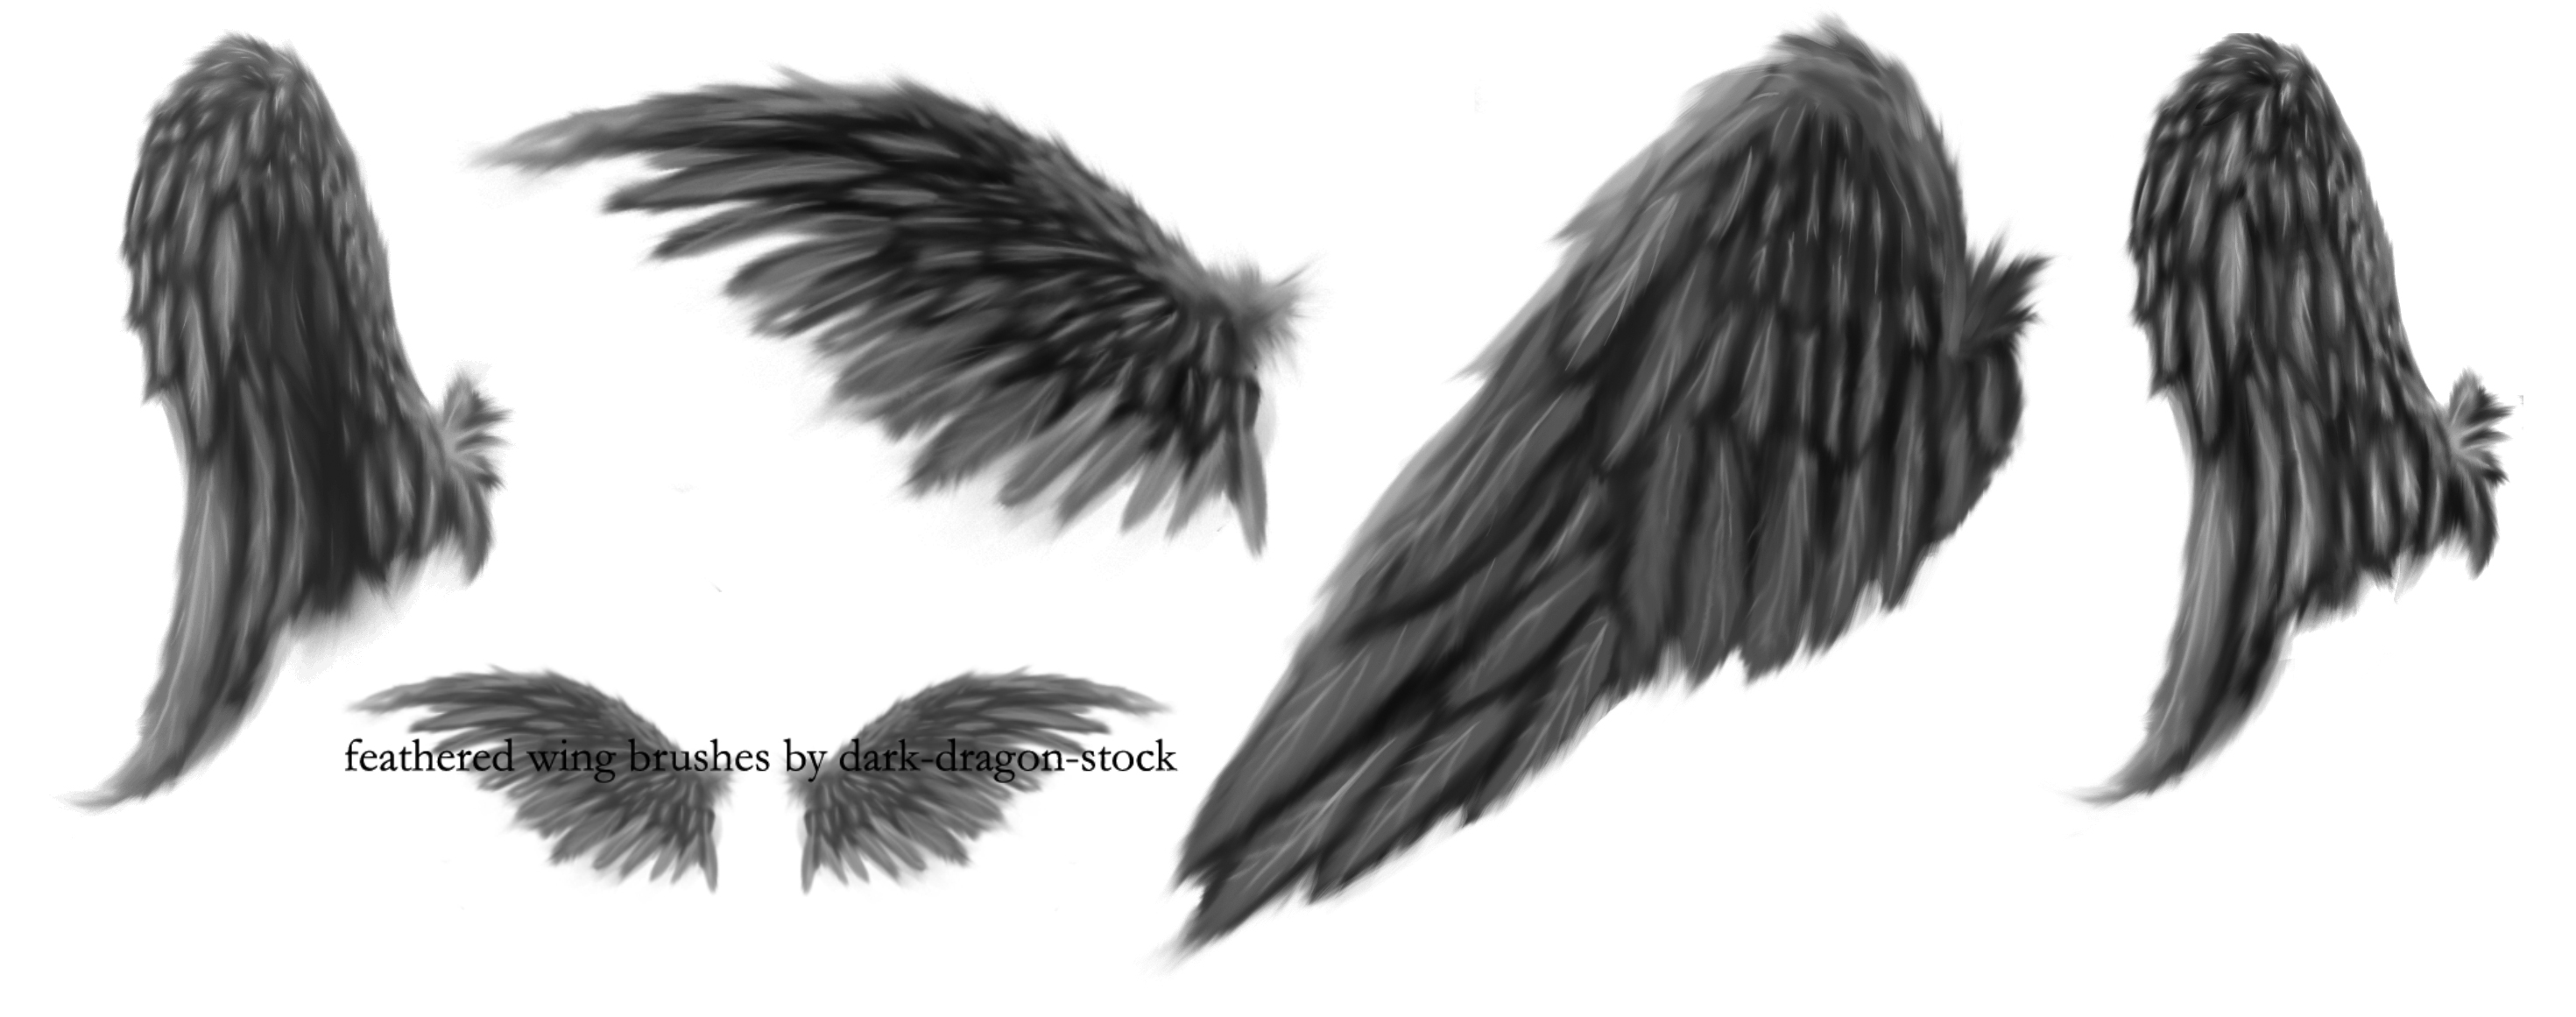 feathered wing brushes